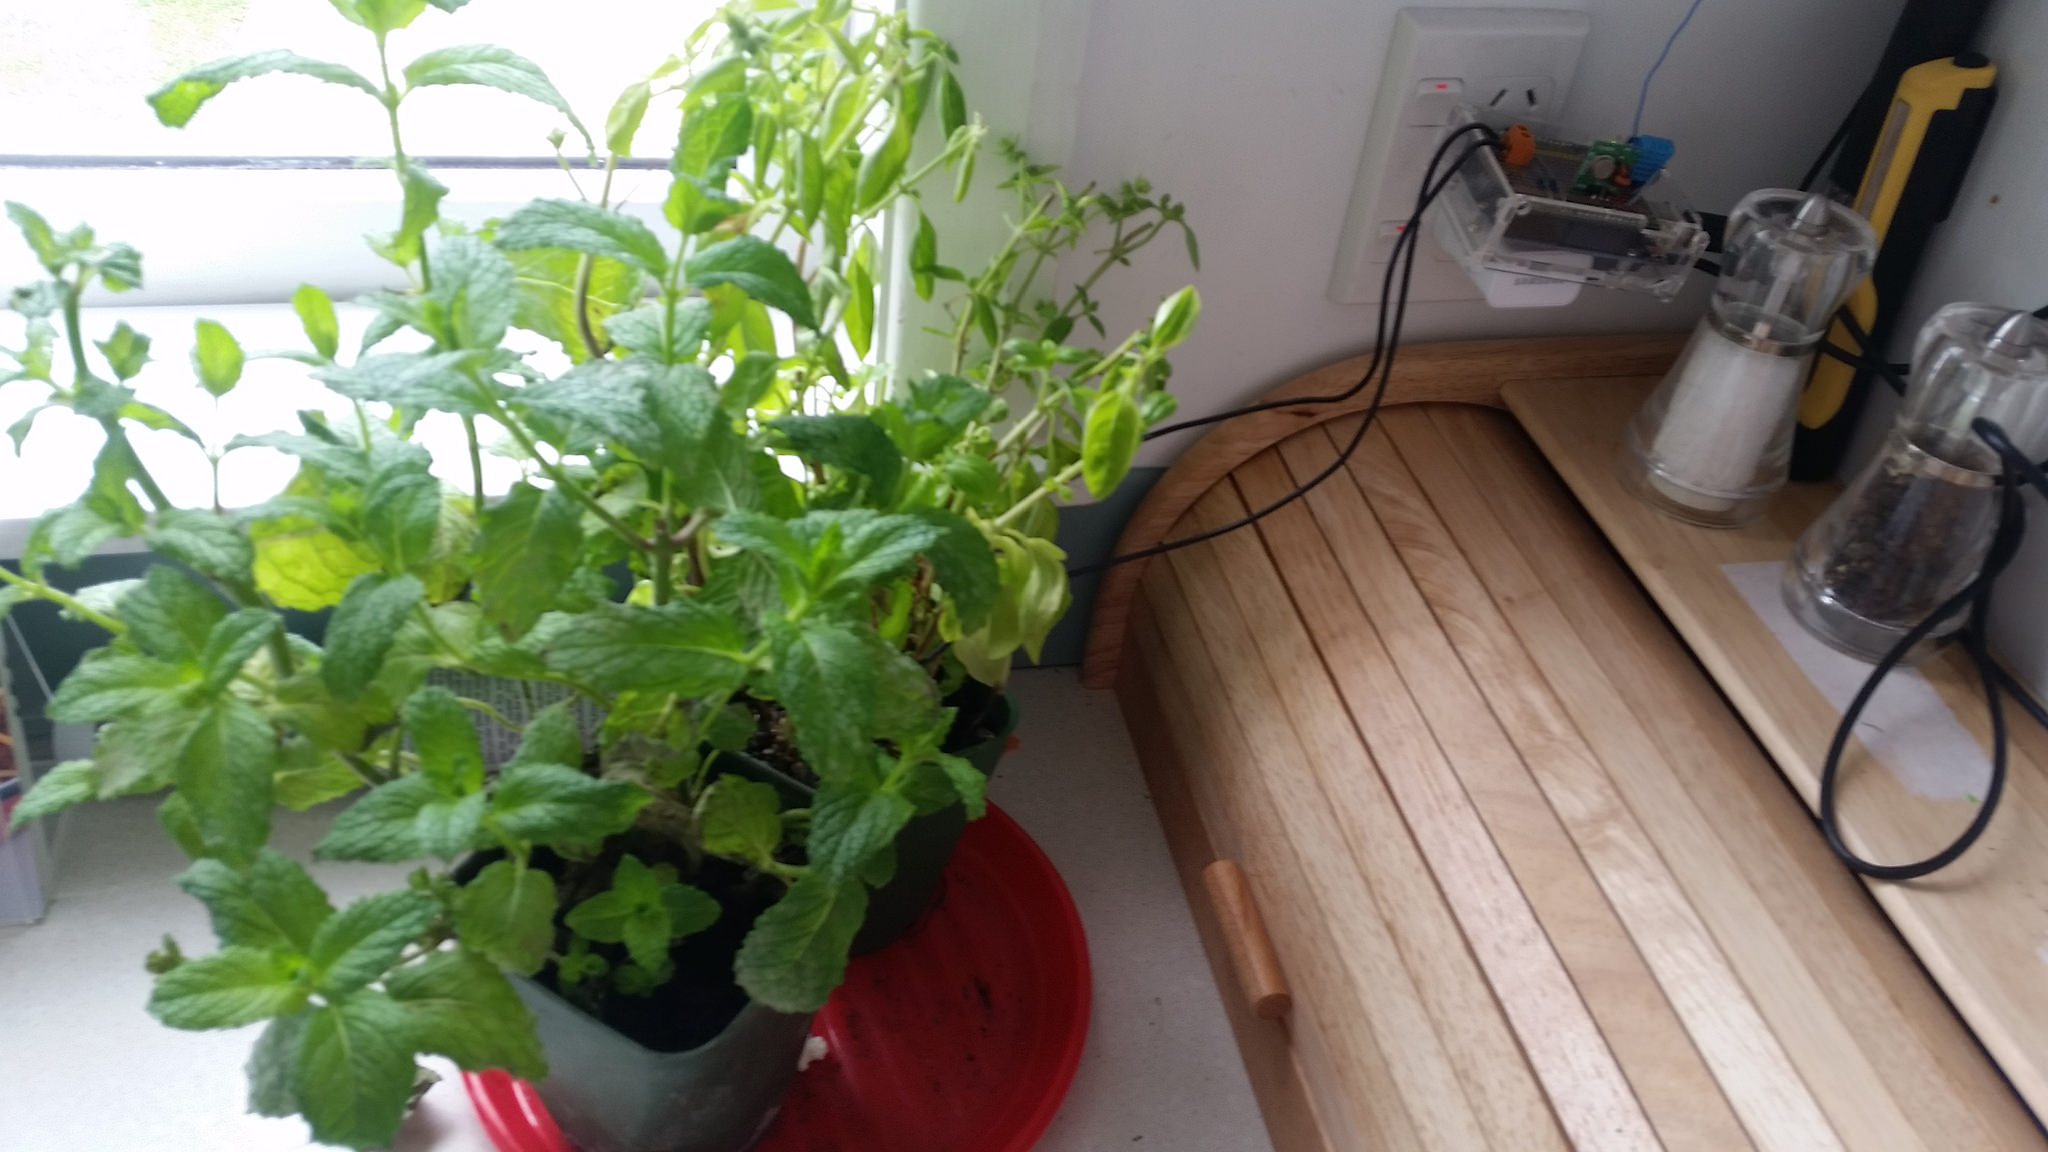 Arduino Environment sensors. Temp, Humidity, Plant water.